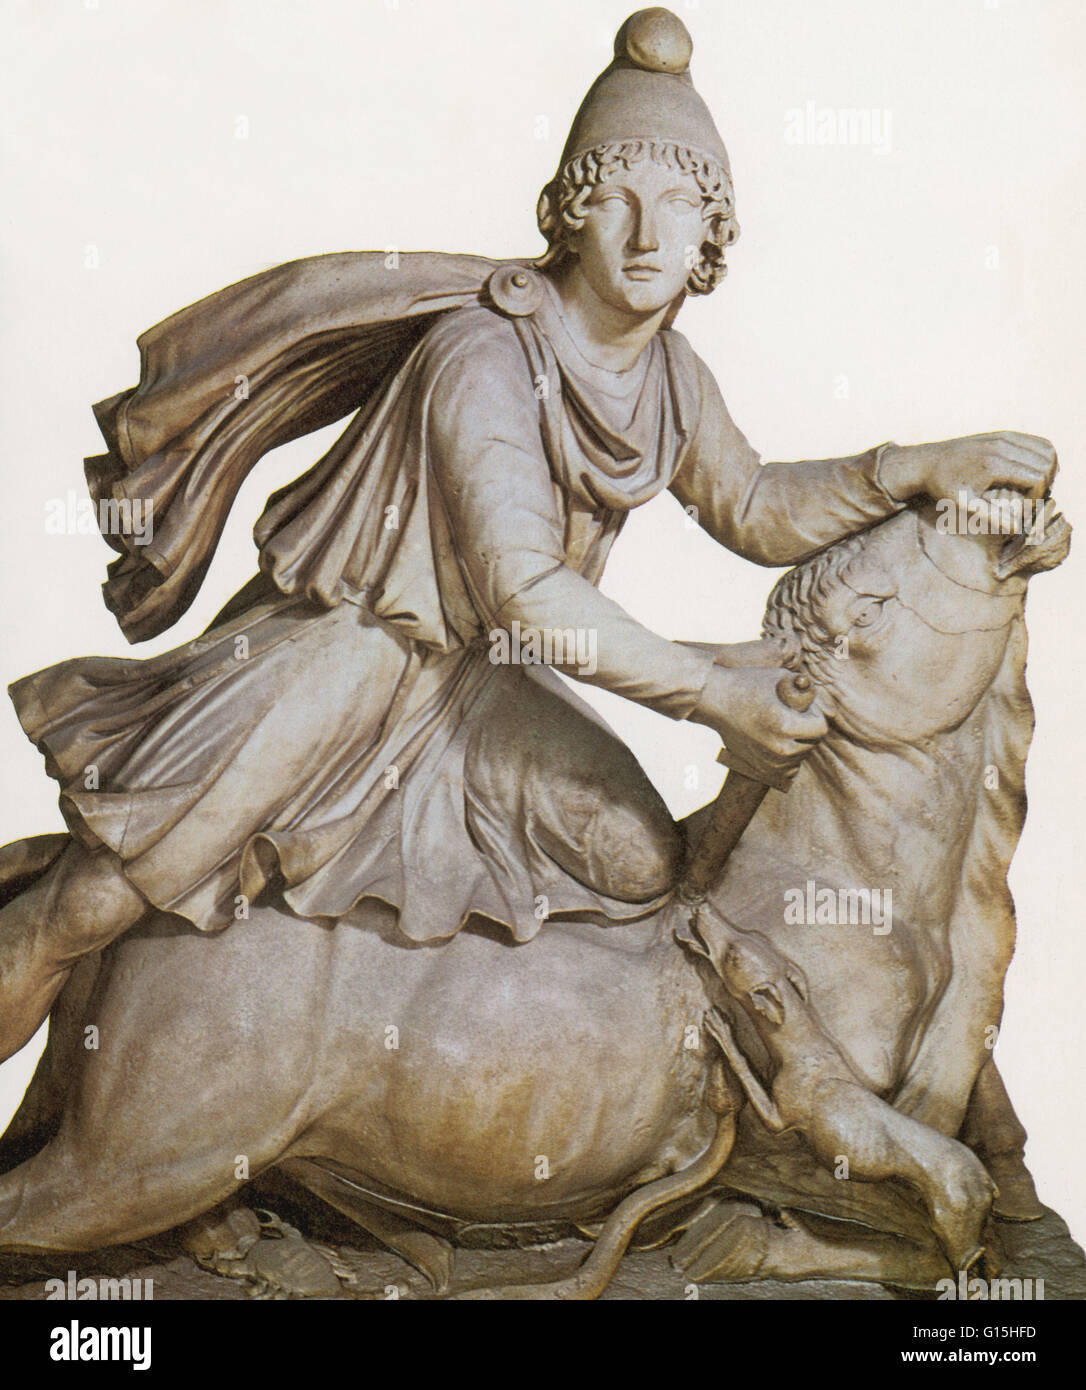 The god Mithras slaying the great bull. The spilling of the bull's blood was believed to bring about the rebirth - Stock Image